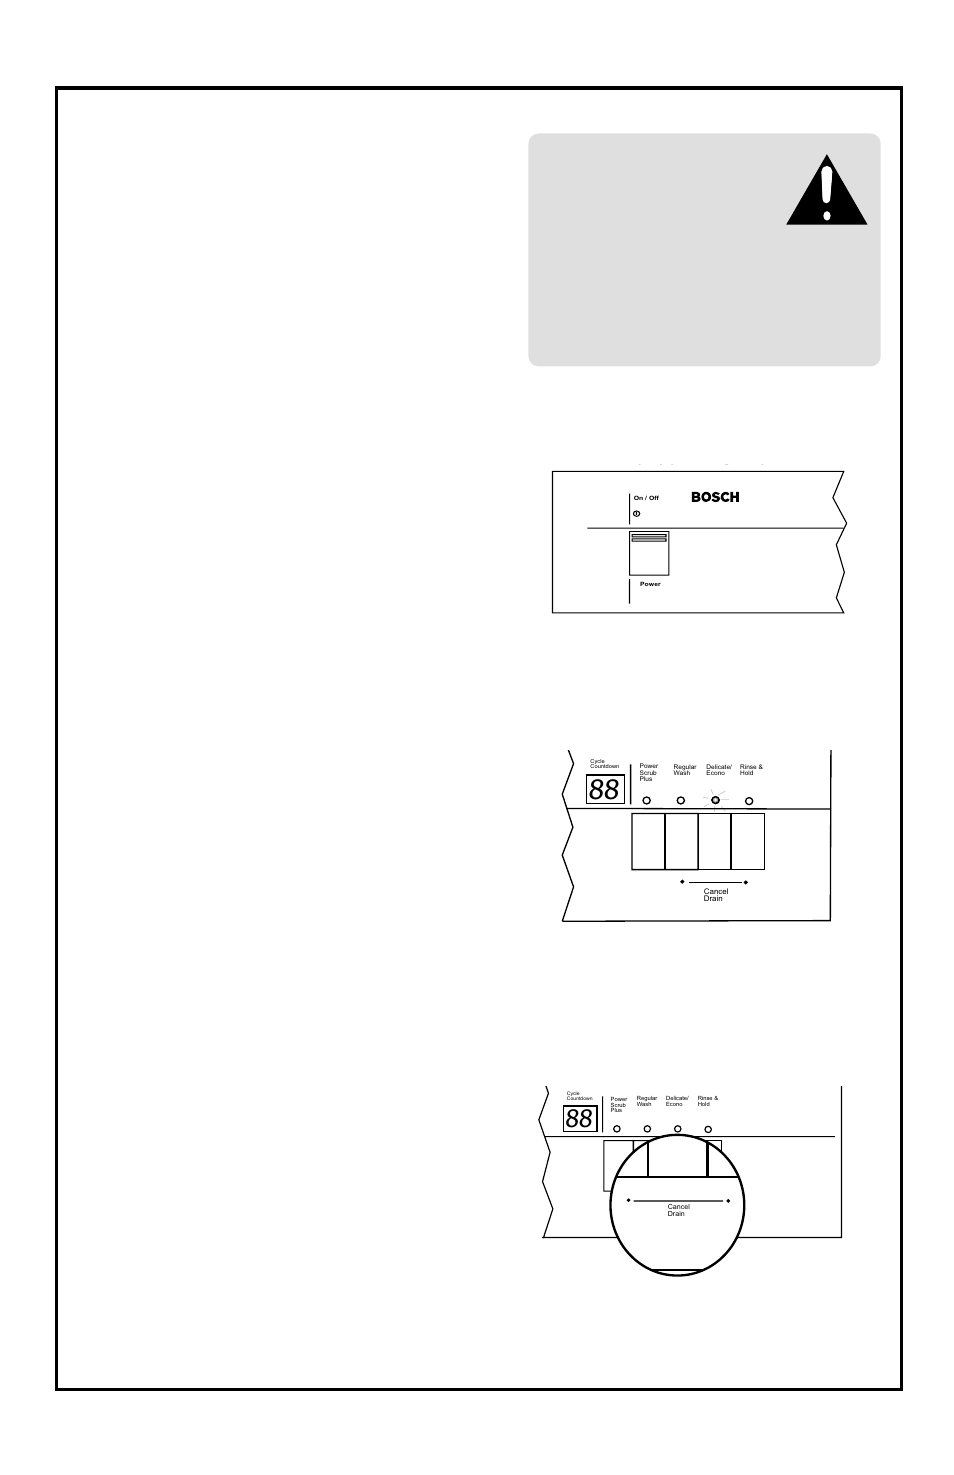 20 - english, Interrupting, changing or cancelling a cycle